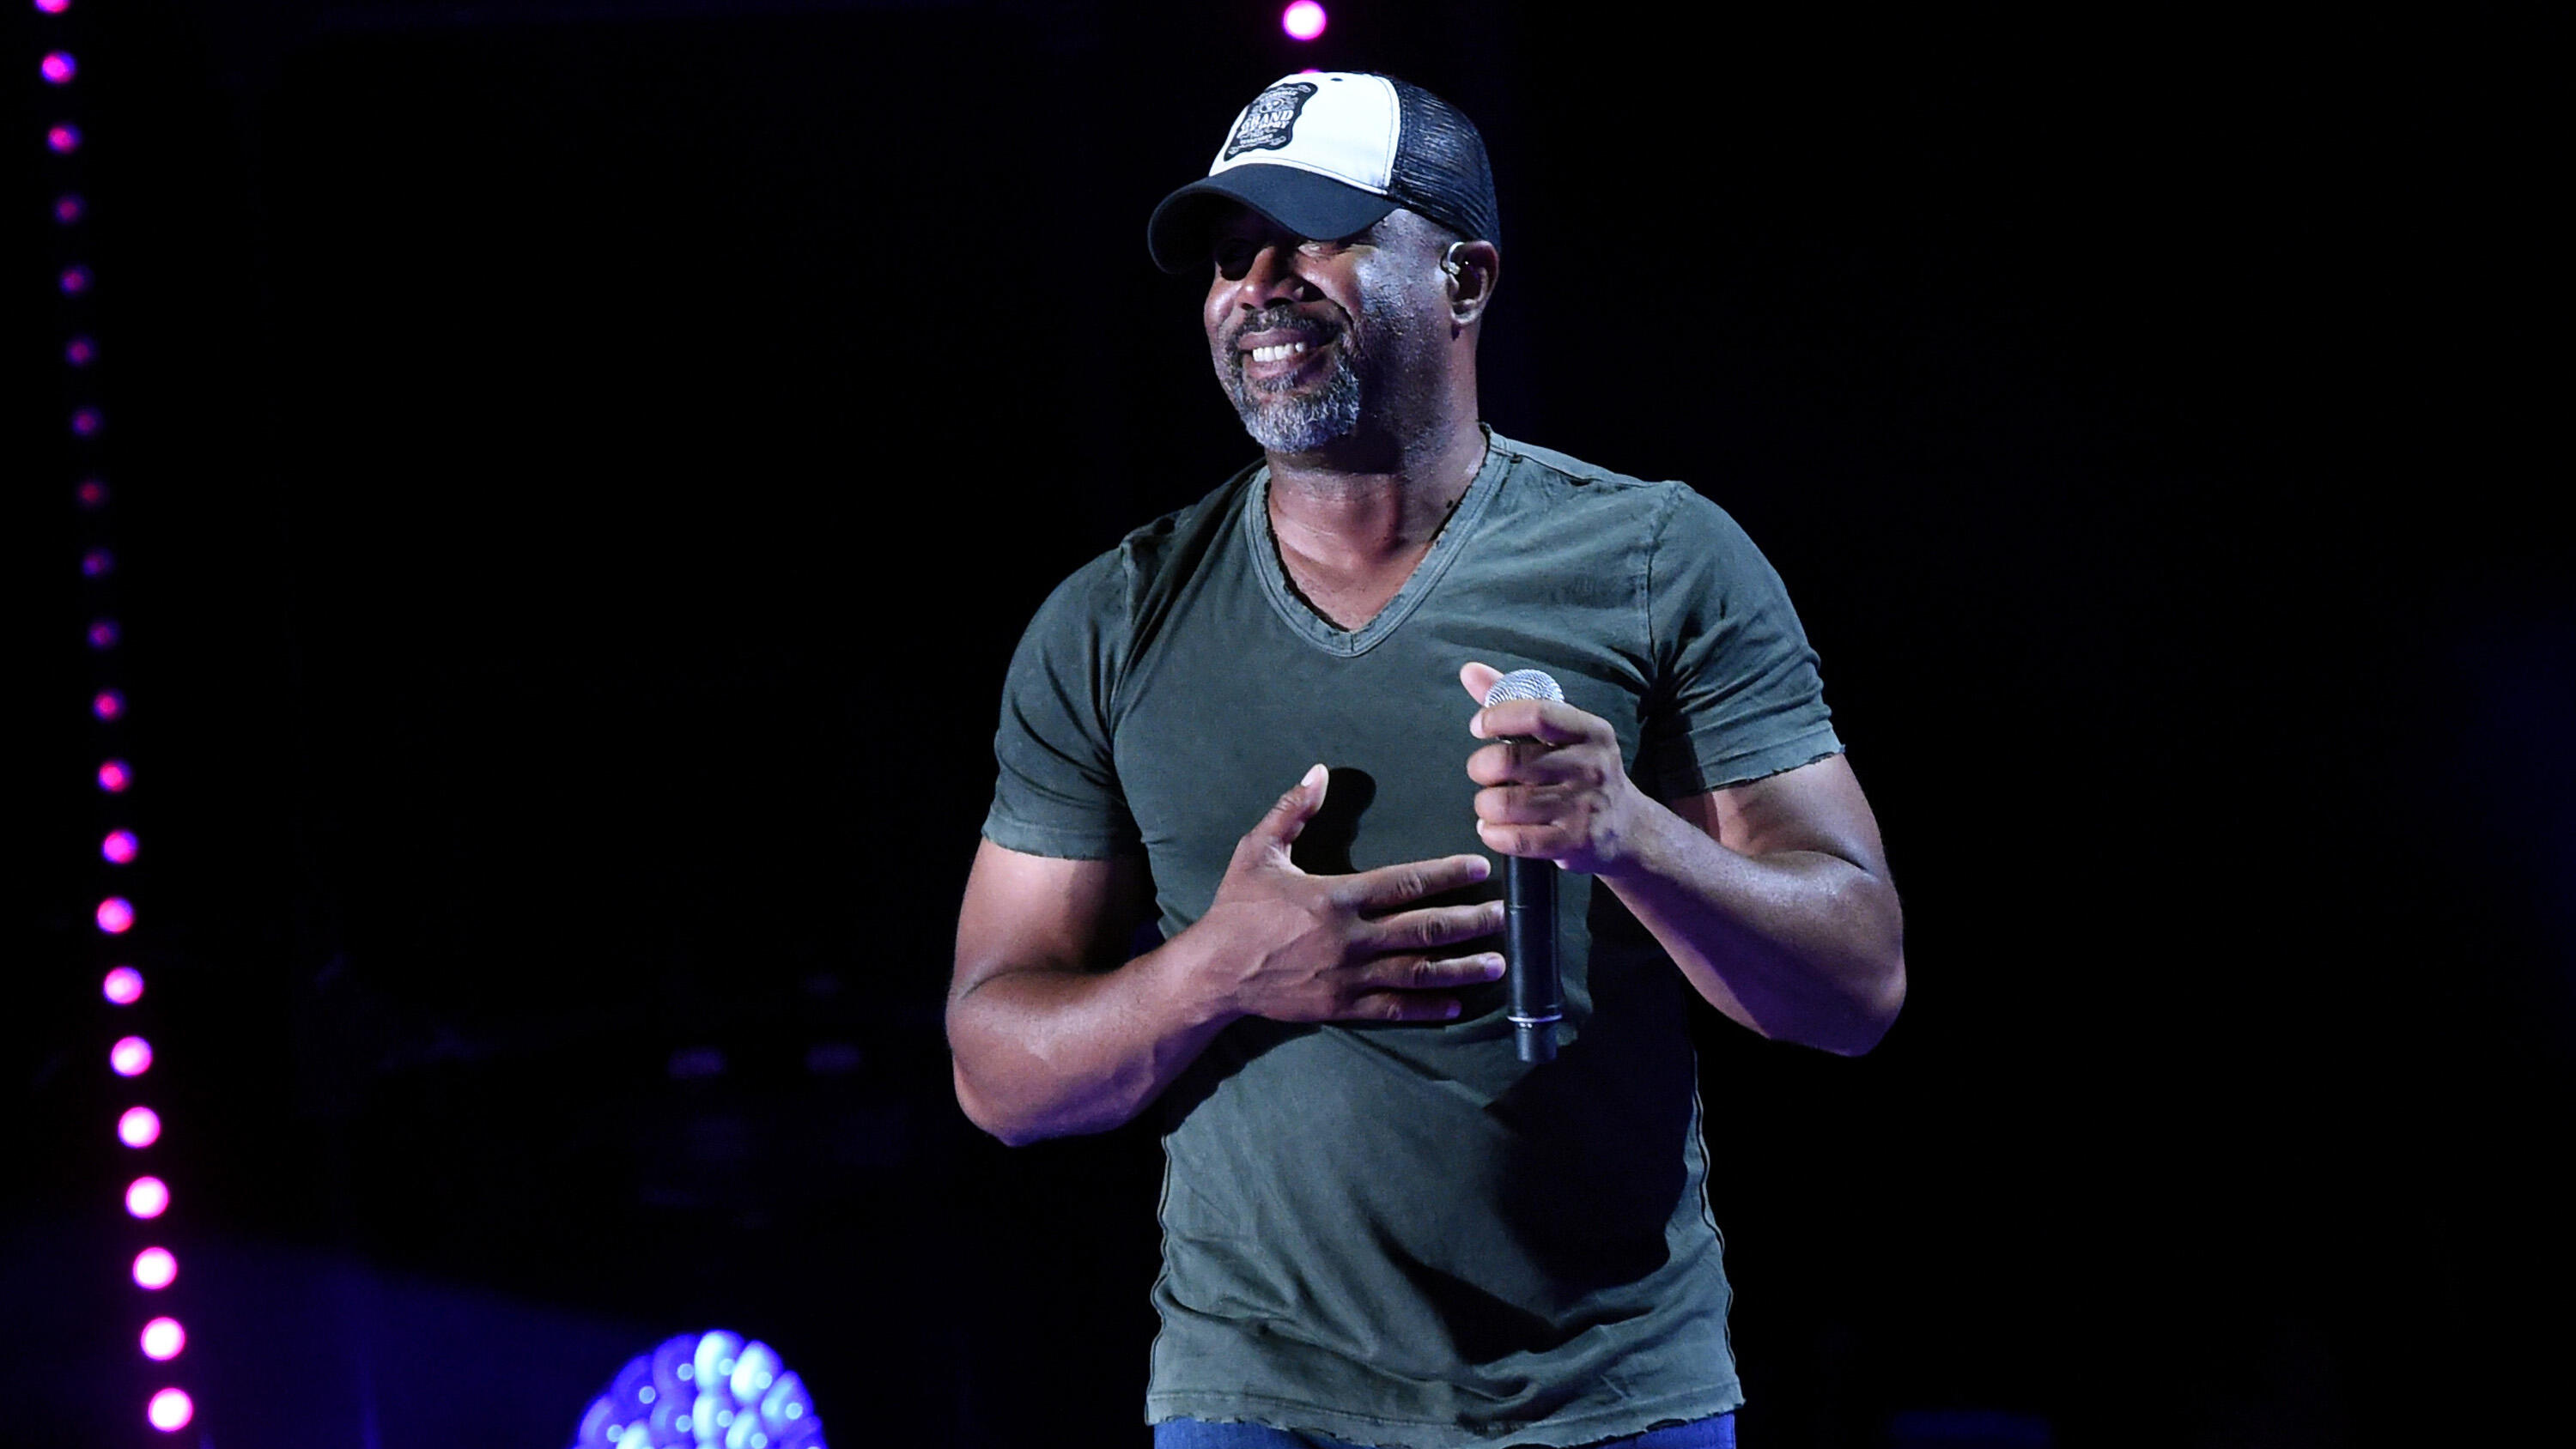 NASHVILLE, TN - JUNE 11:  (EDITORIAL USE ONLY)  Singer-songwriter Darius Rucker performs onstage during day 4 of the 2017 CMA Music Festival on June 11, 2017 in Nashville, Tennessee.  (Photo by Rick Diamond/Getty Images)